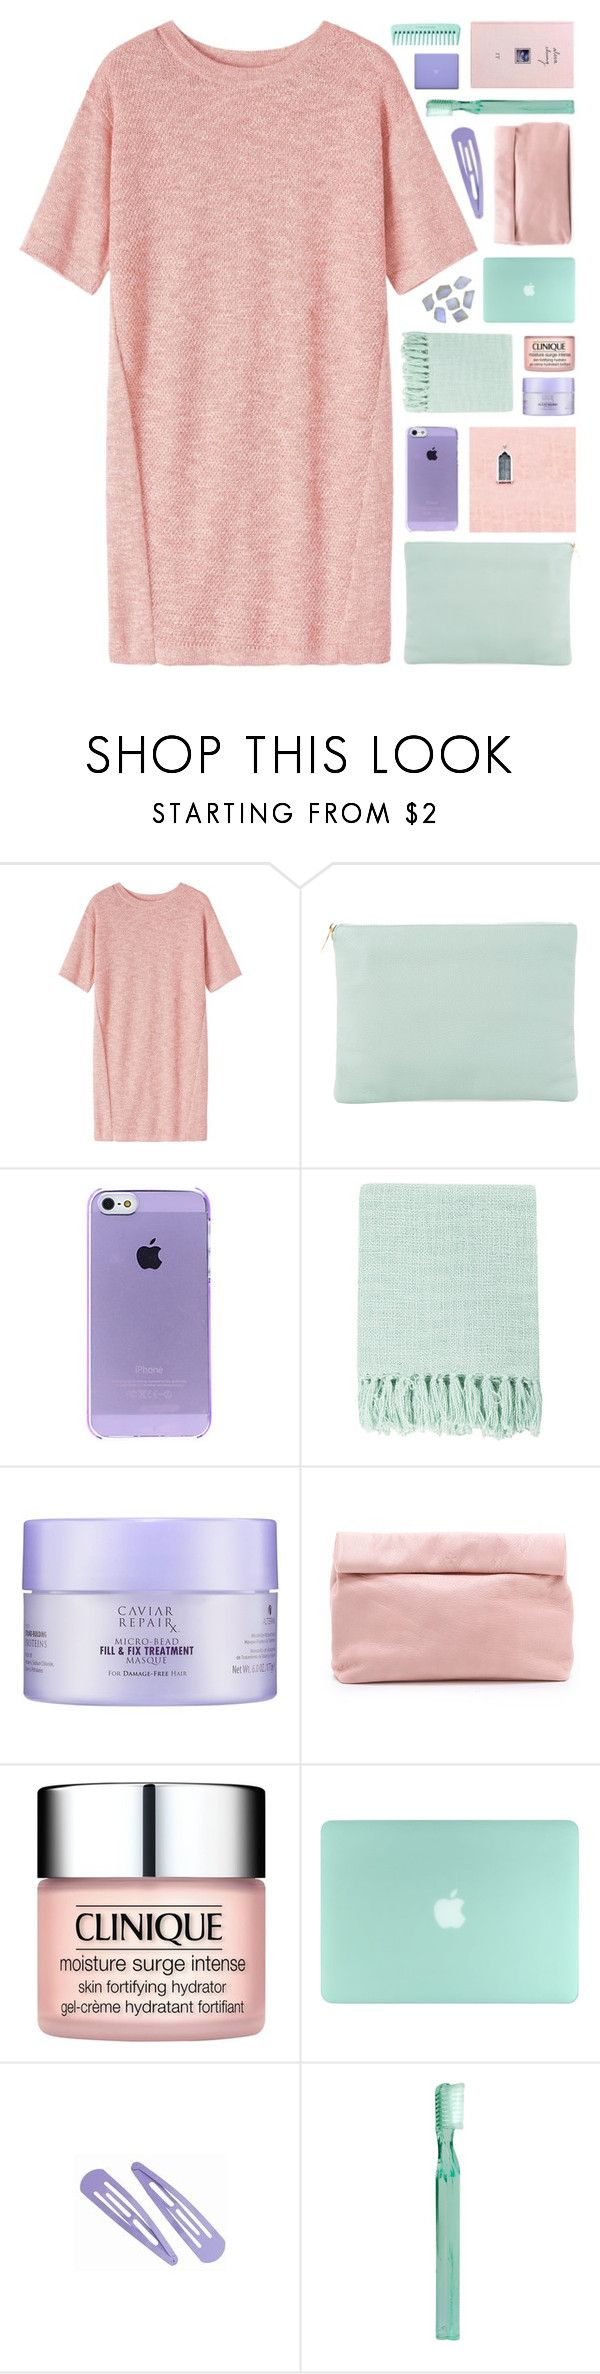 """""""sweetie pie..."""" by cinnamon-and-cocoa ❤ liked on Polyvore featuring Toast, Meli Melo, Surya, Alterna, Marie Turnor, Clinique, Supersmile and MAC Cosmetics"""